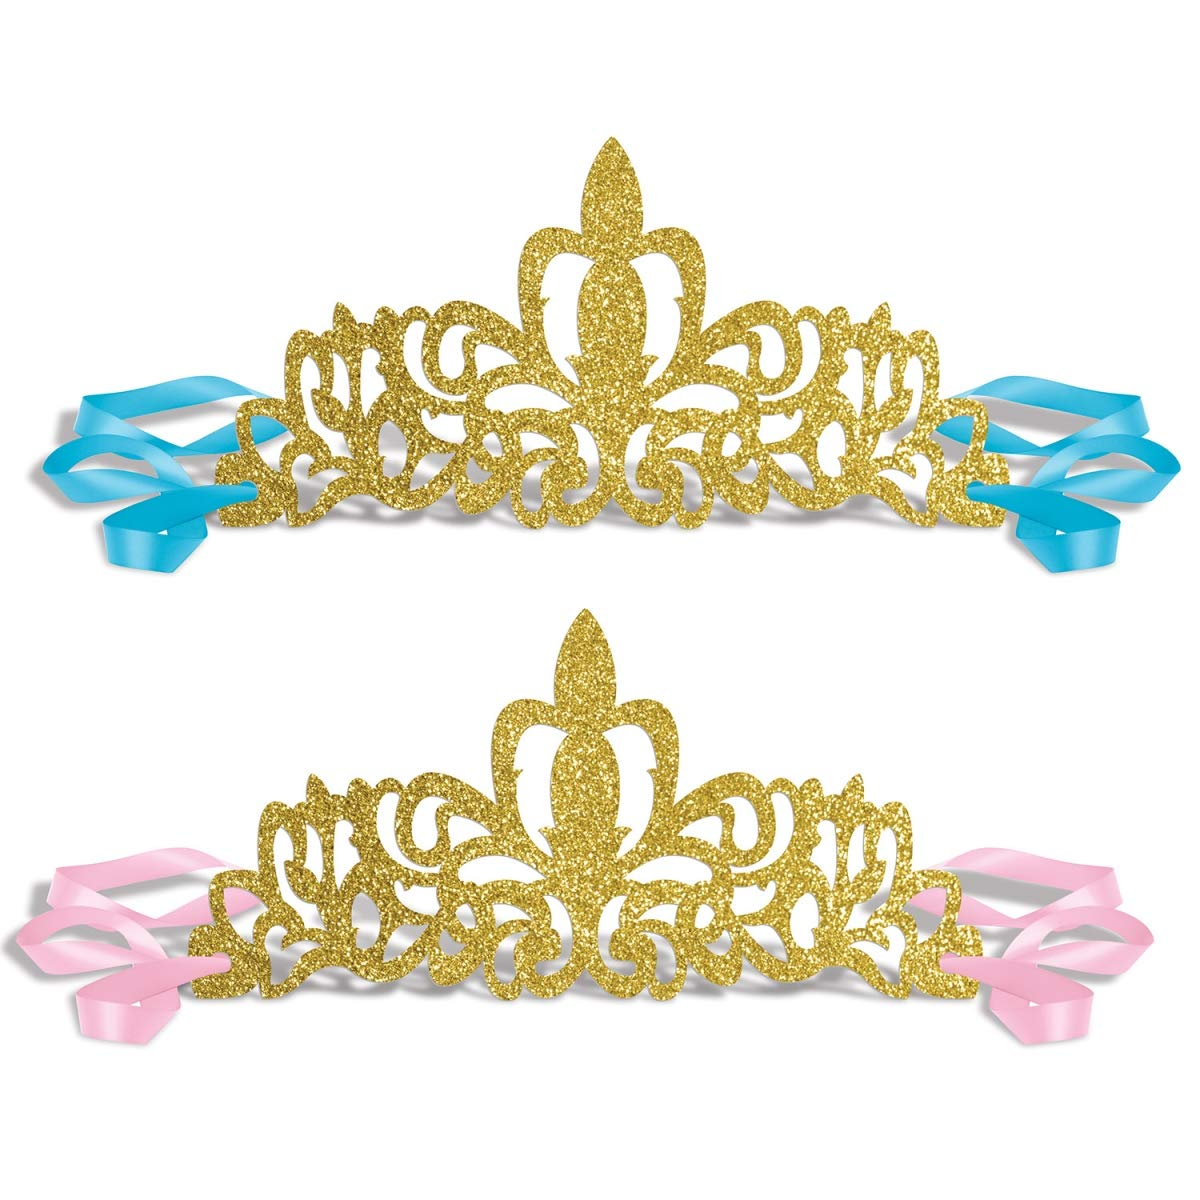 Beistle 60663 Glittered Princess Tiaras - Pack of 12